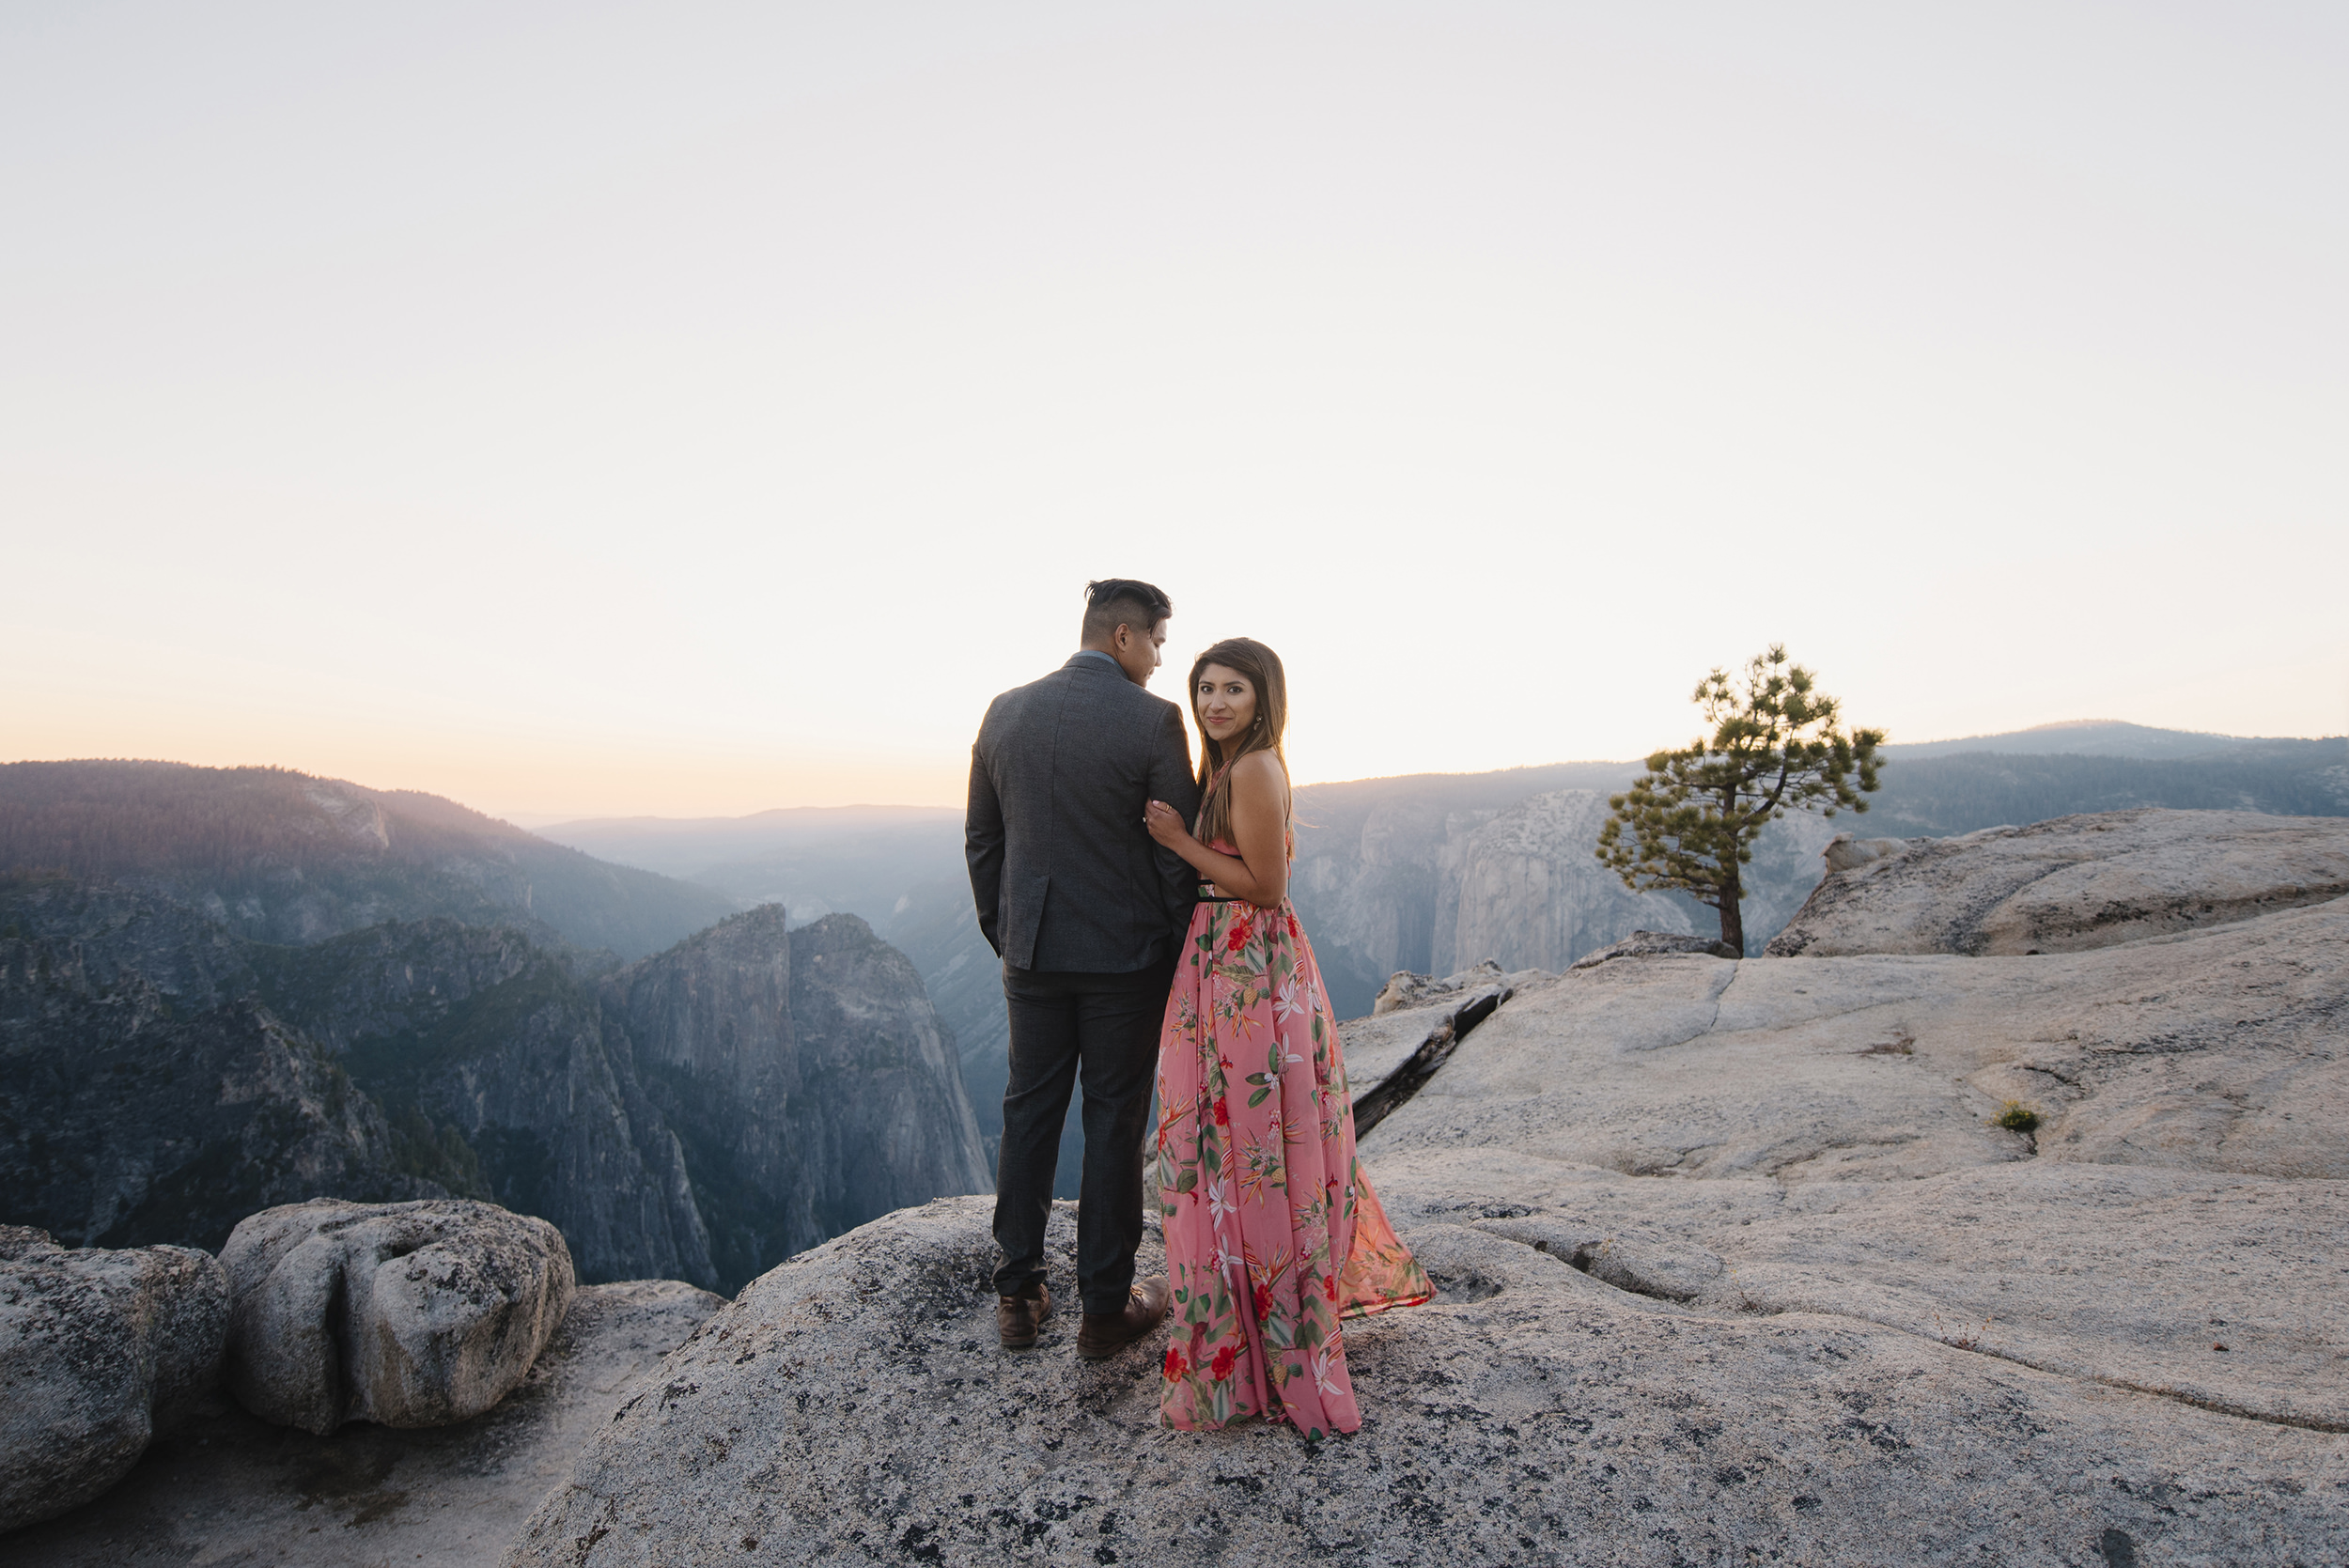 She glances back over her shoulder as they watch the sunset from Taft Point during engagement photography by Yosemite Wedding Photographers Colby and Jess colbyandjess.com